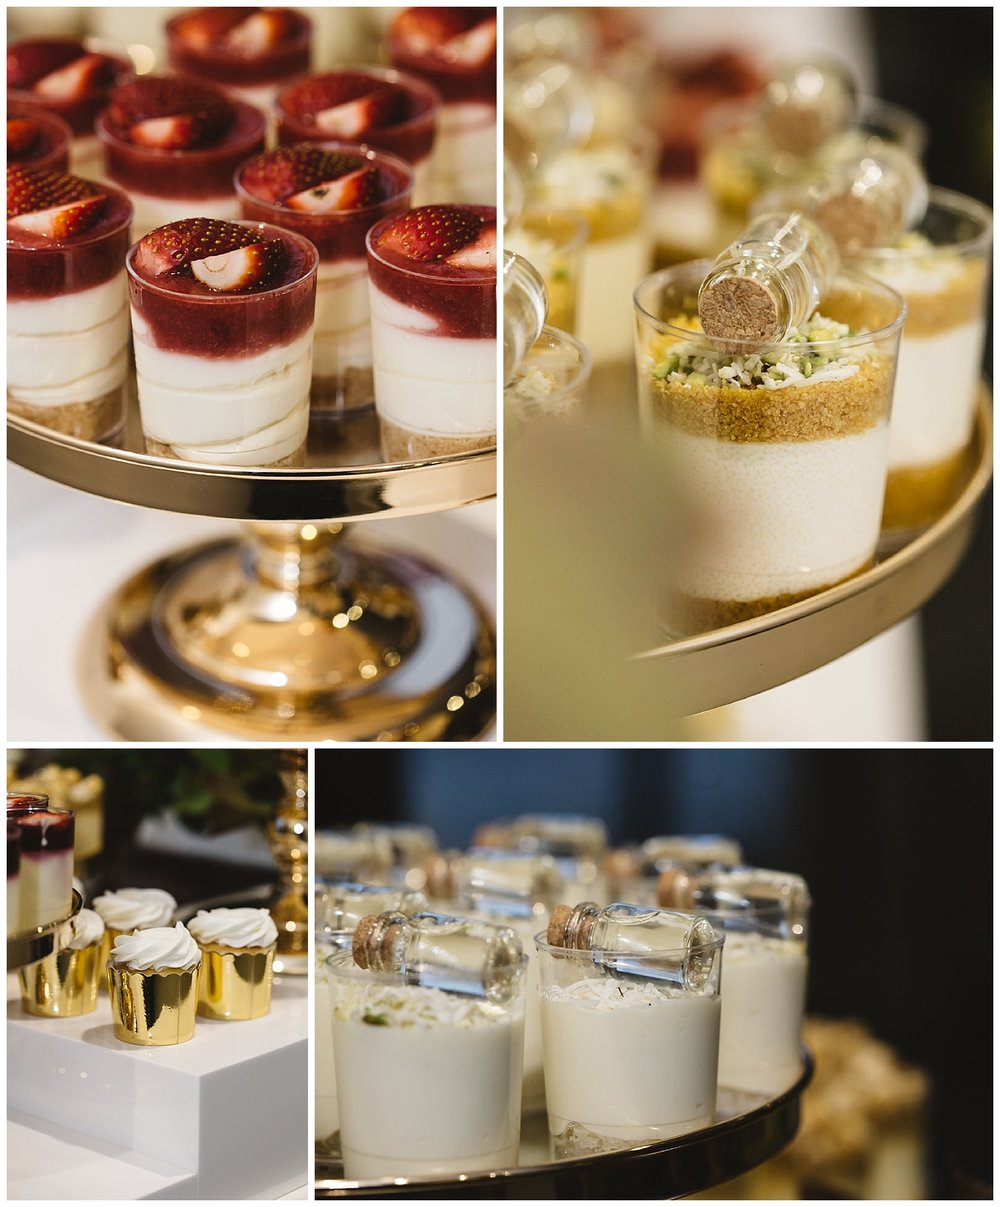 mornington weddings and styling of weddings in melbourne